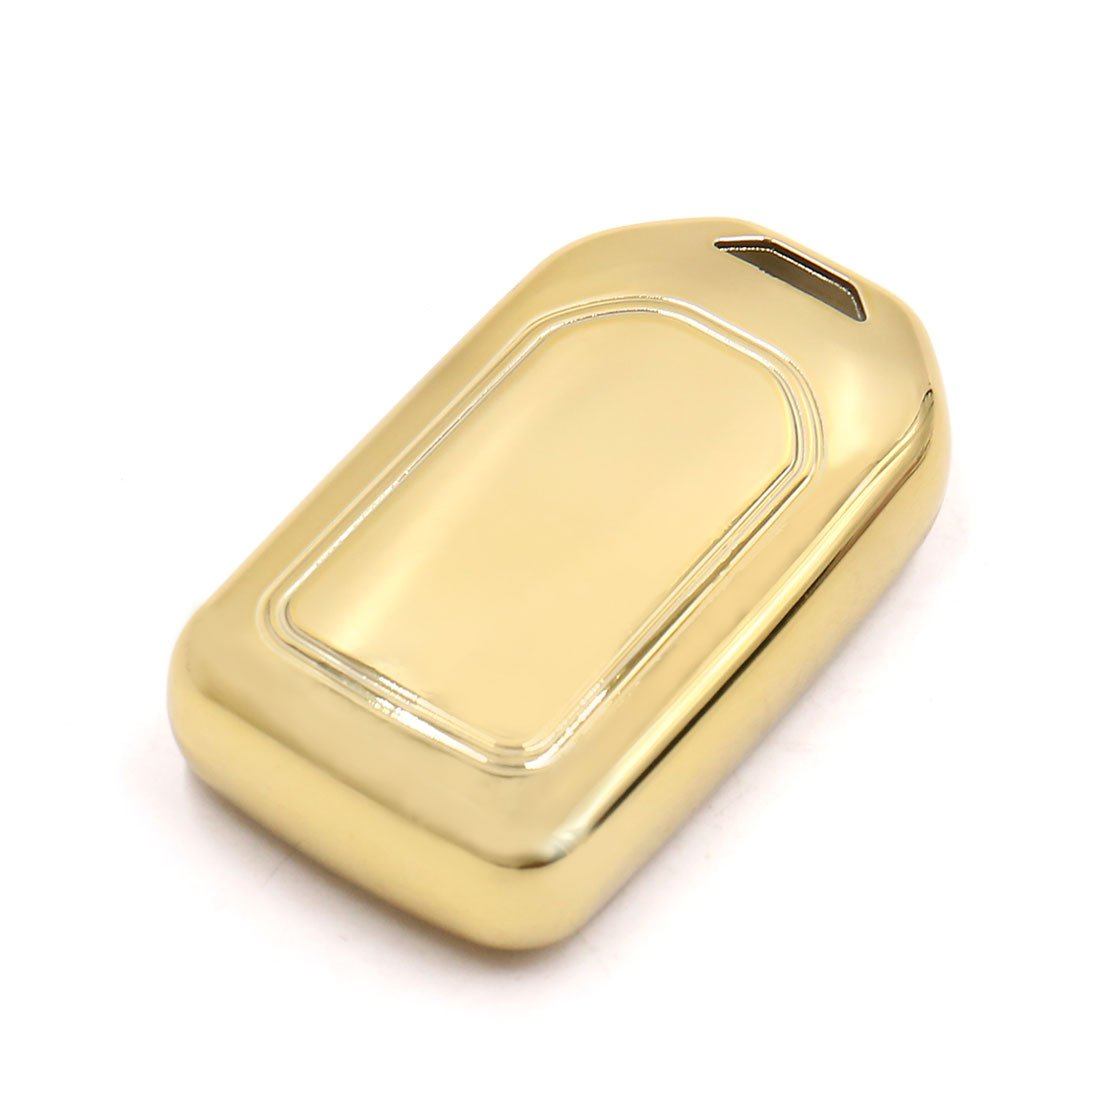 uxcell Gold Tone Remote Key Case Holder Shell Protect Cover Fit For Honda AVANCIER